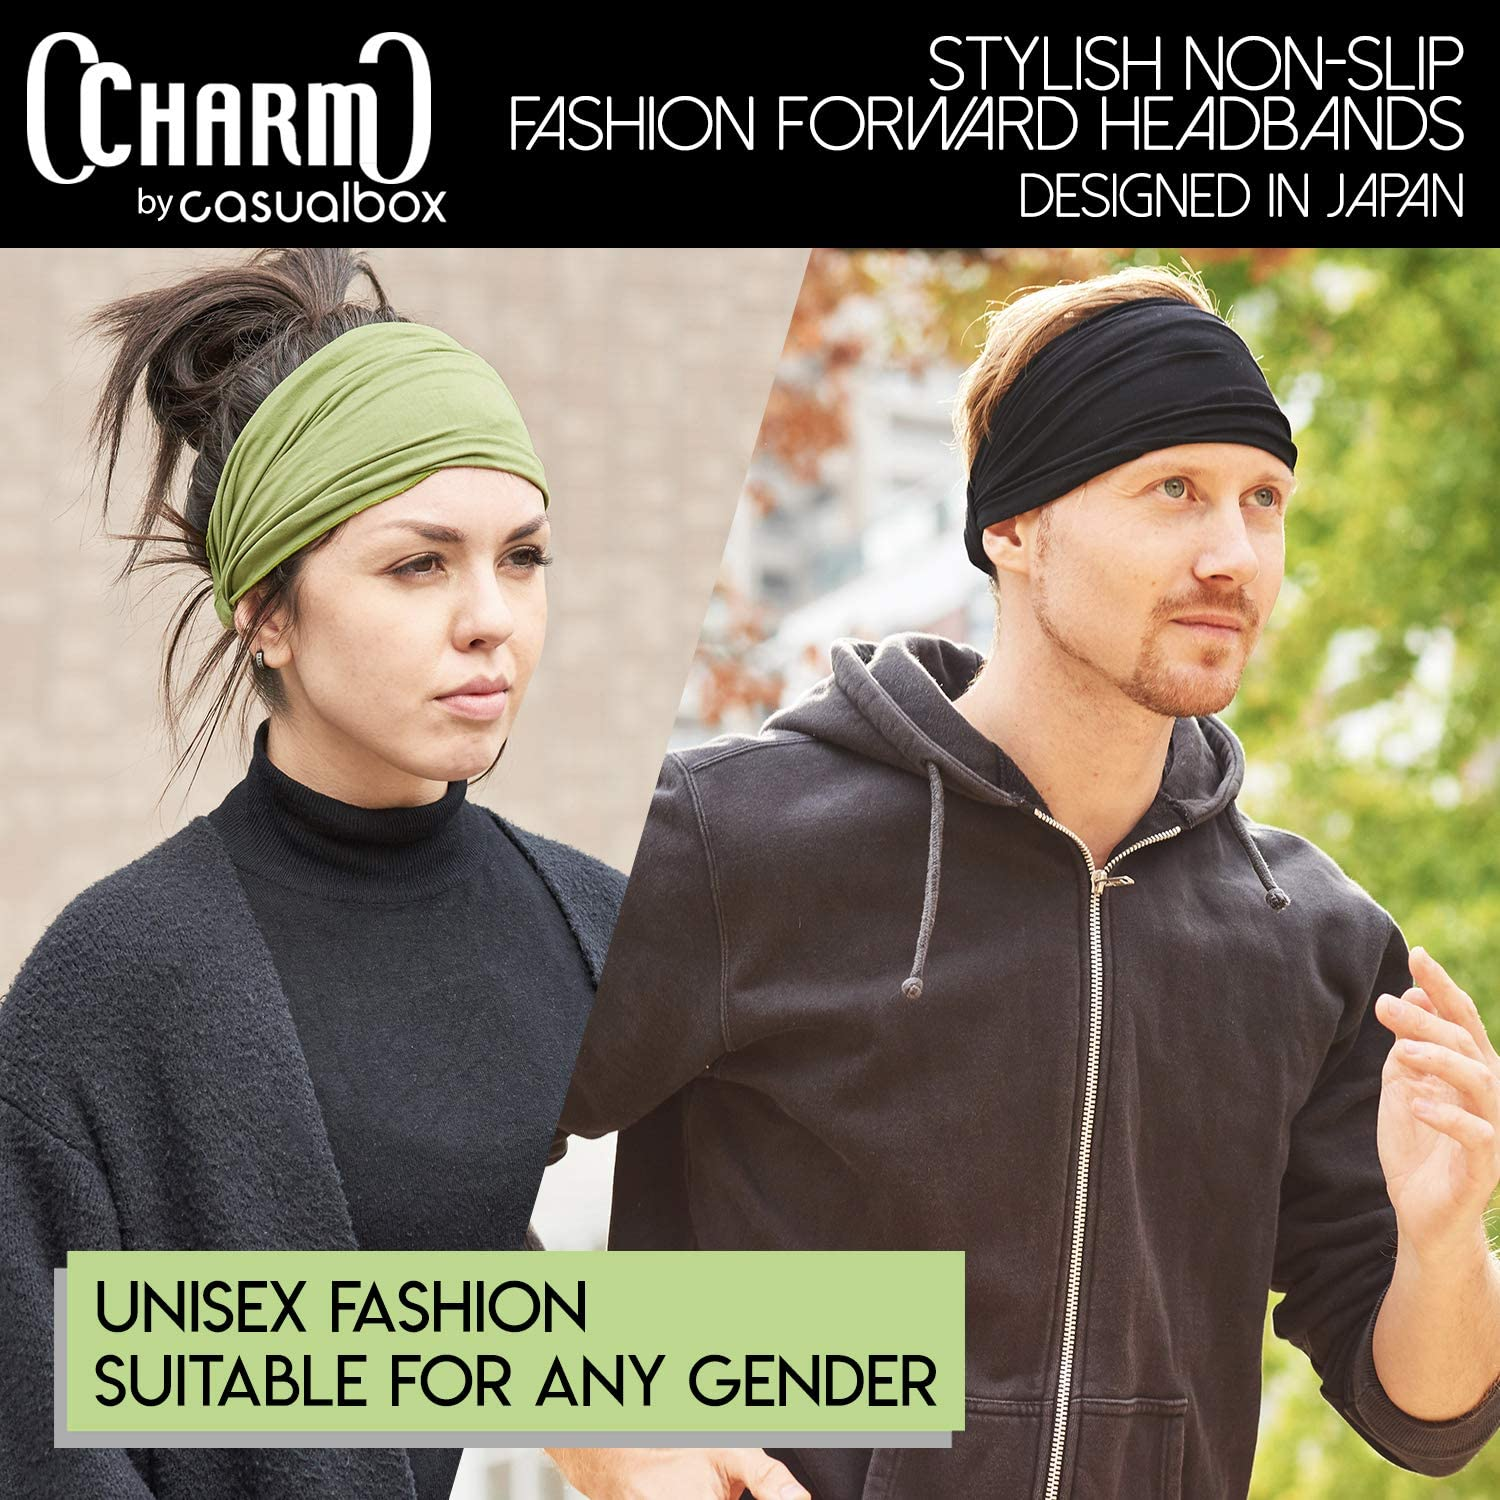 Japanese Bandana Headbands for Men and Women – Comfortable Head Bands with Elastic Secure Snug Fit Ideal Runners Fitness Sports Football Tennis Lightweight Brown